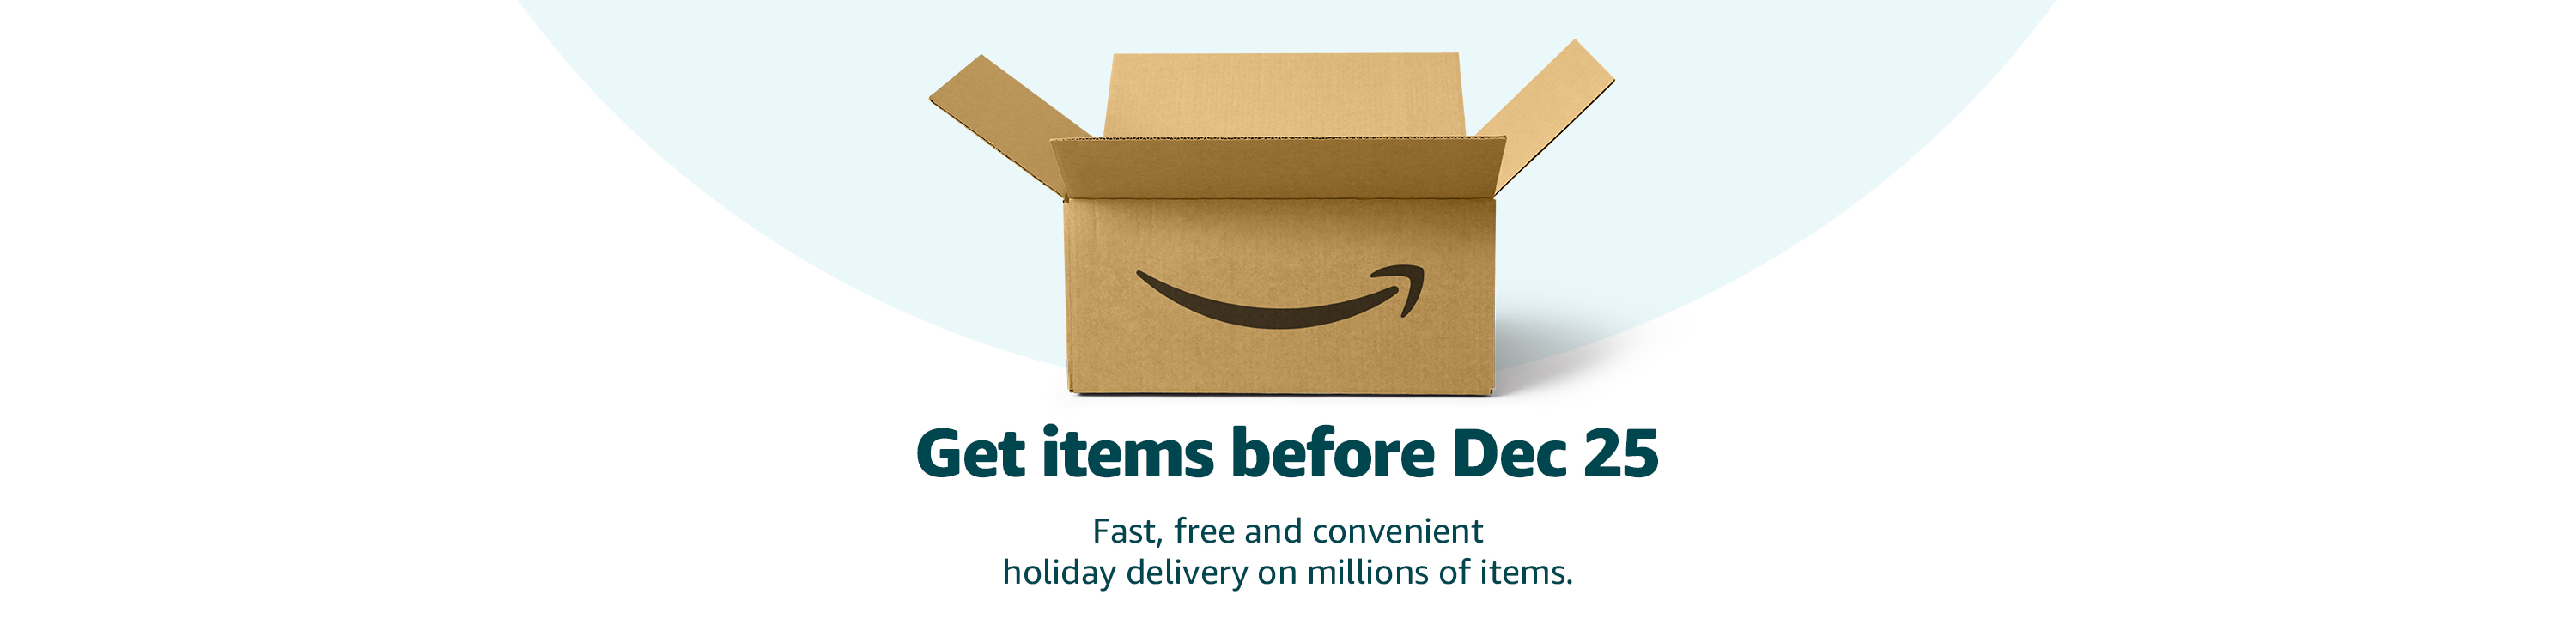 Get items before Dec 25: Millions of items delivered fast, free, conveniently.